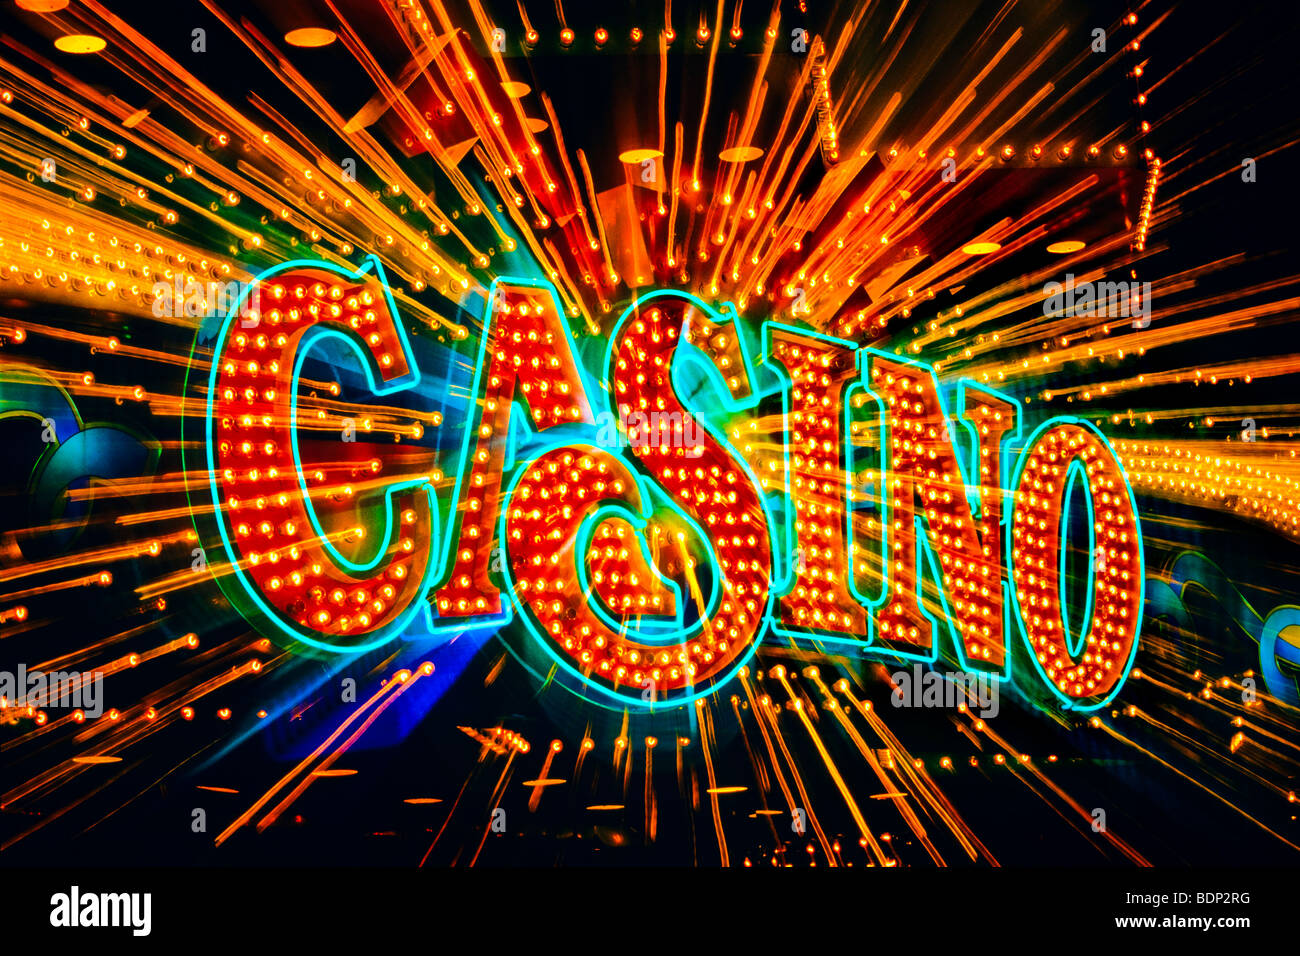 Top 5 Biggest Casinos On The Planet - Kontrol Magazine |Casino Funny Signs